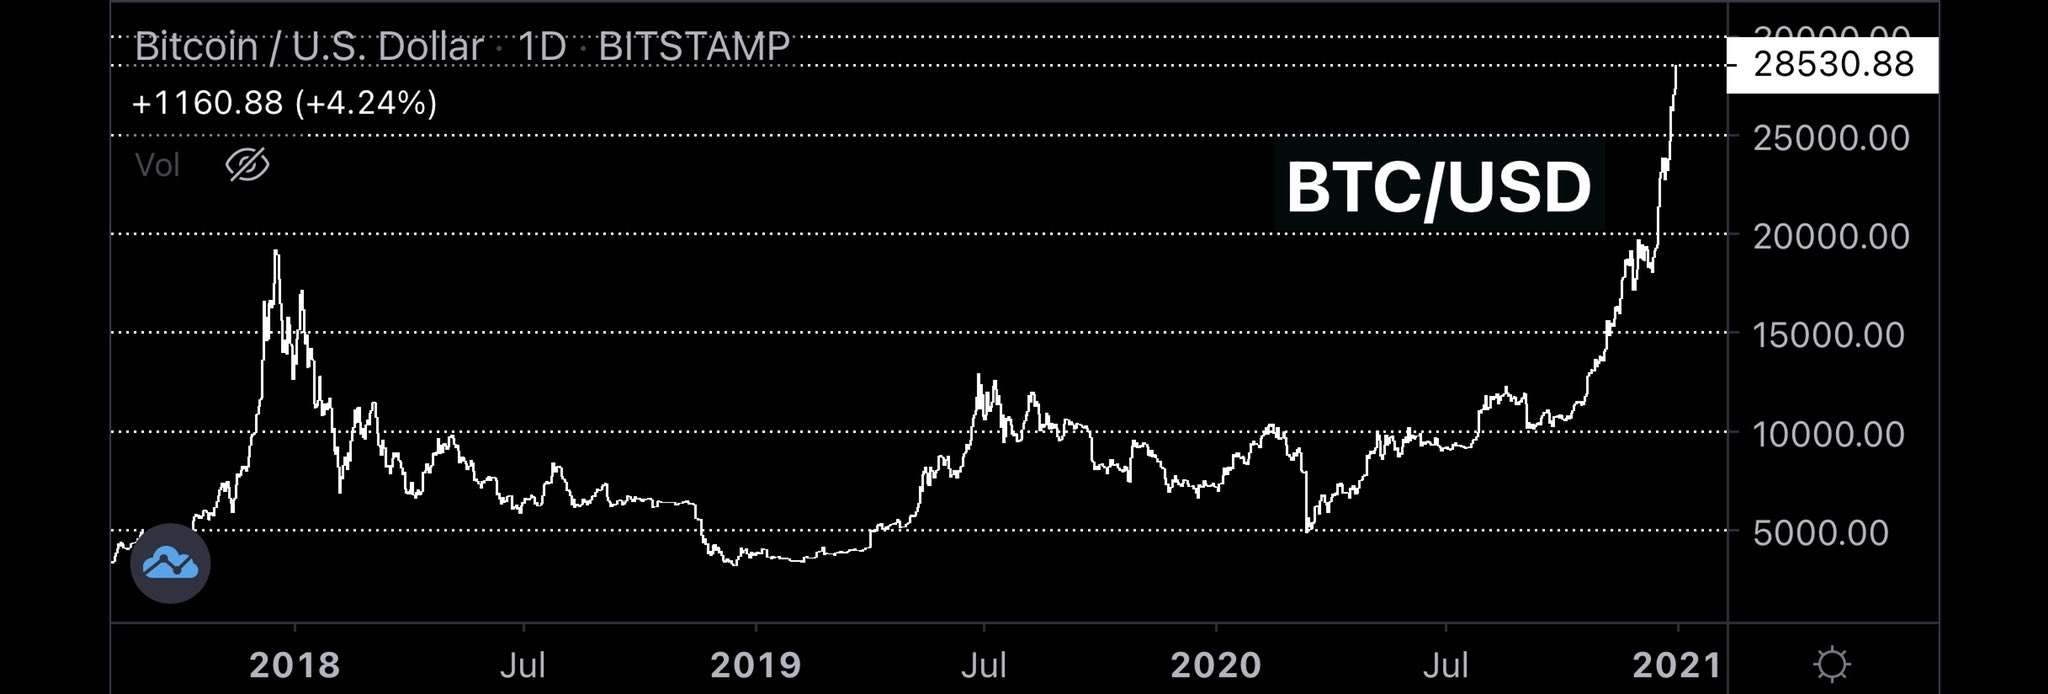 Bitcoin hits a new all time high